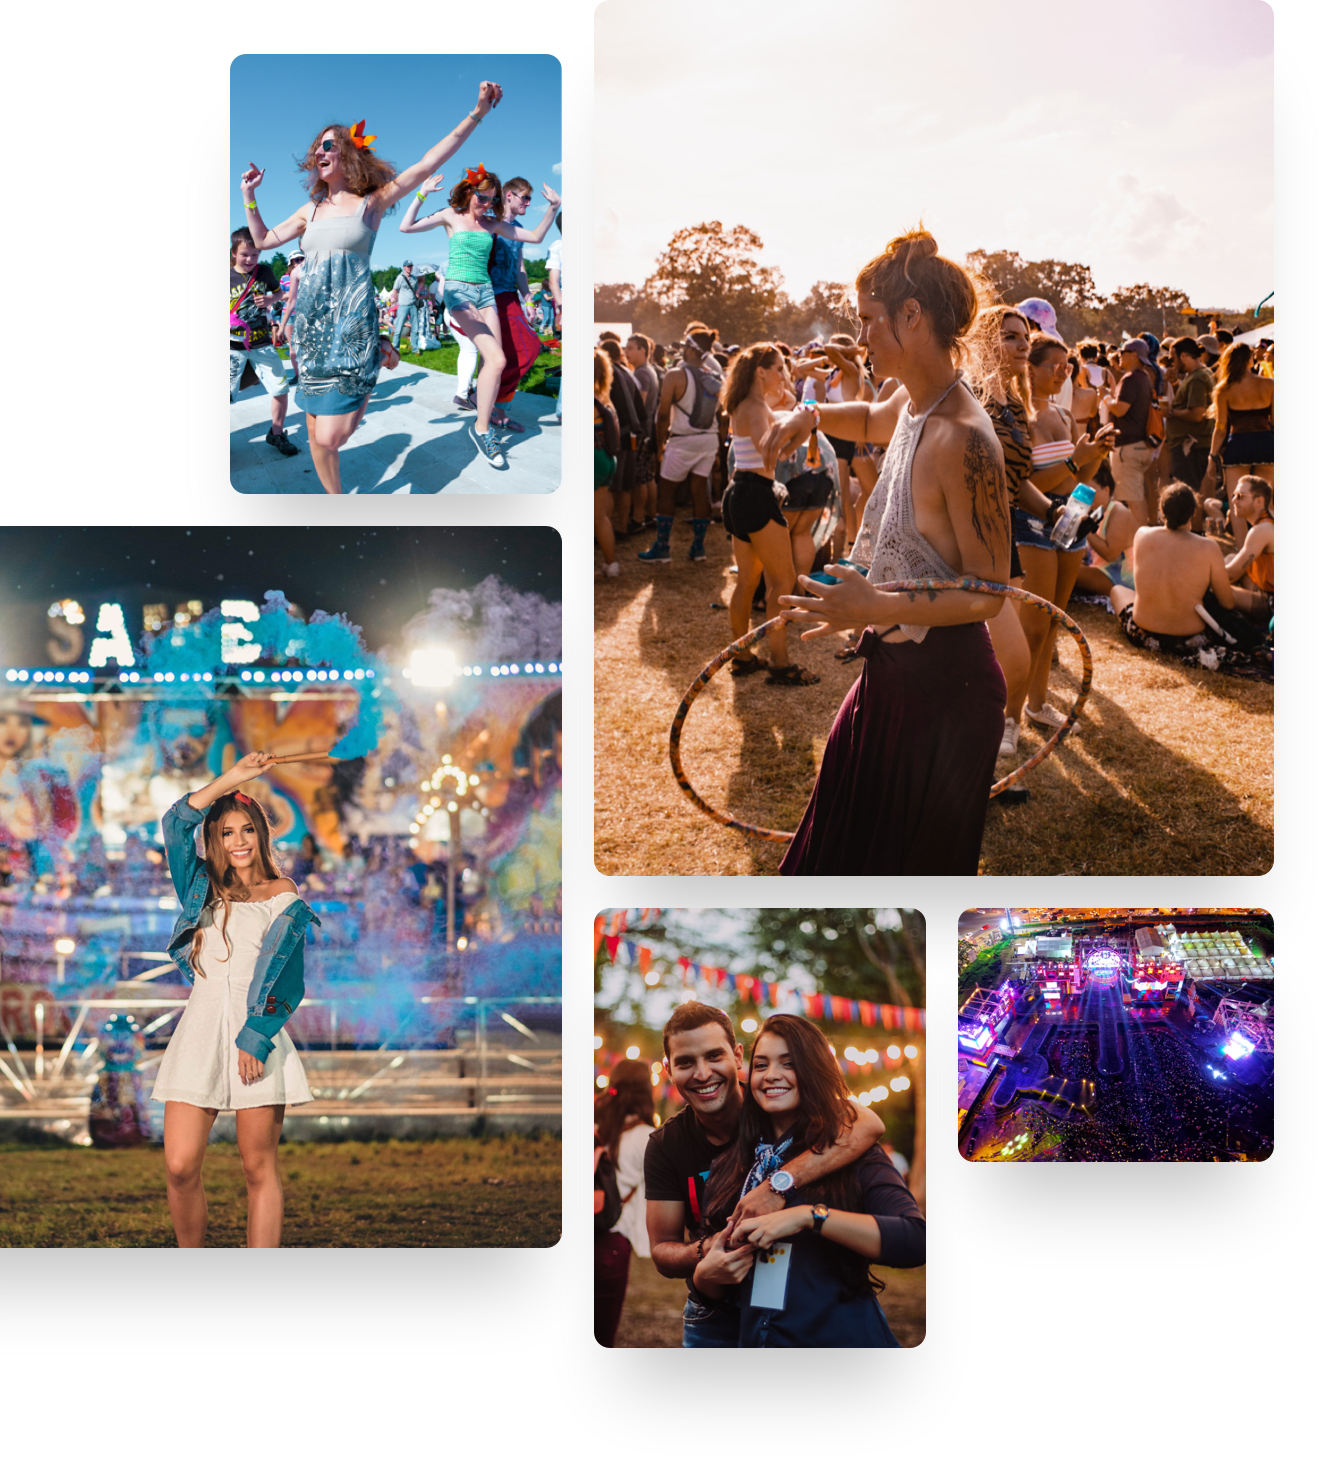 Festival atmosphere collage